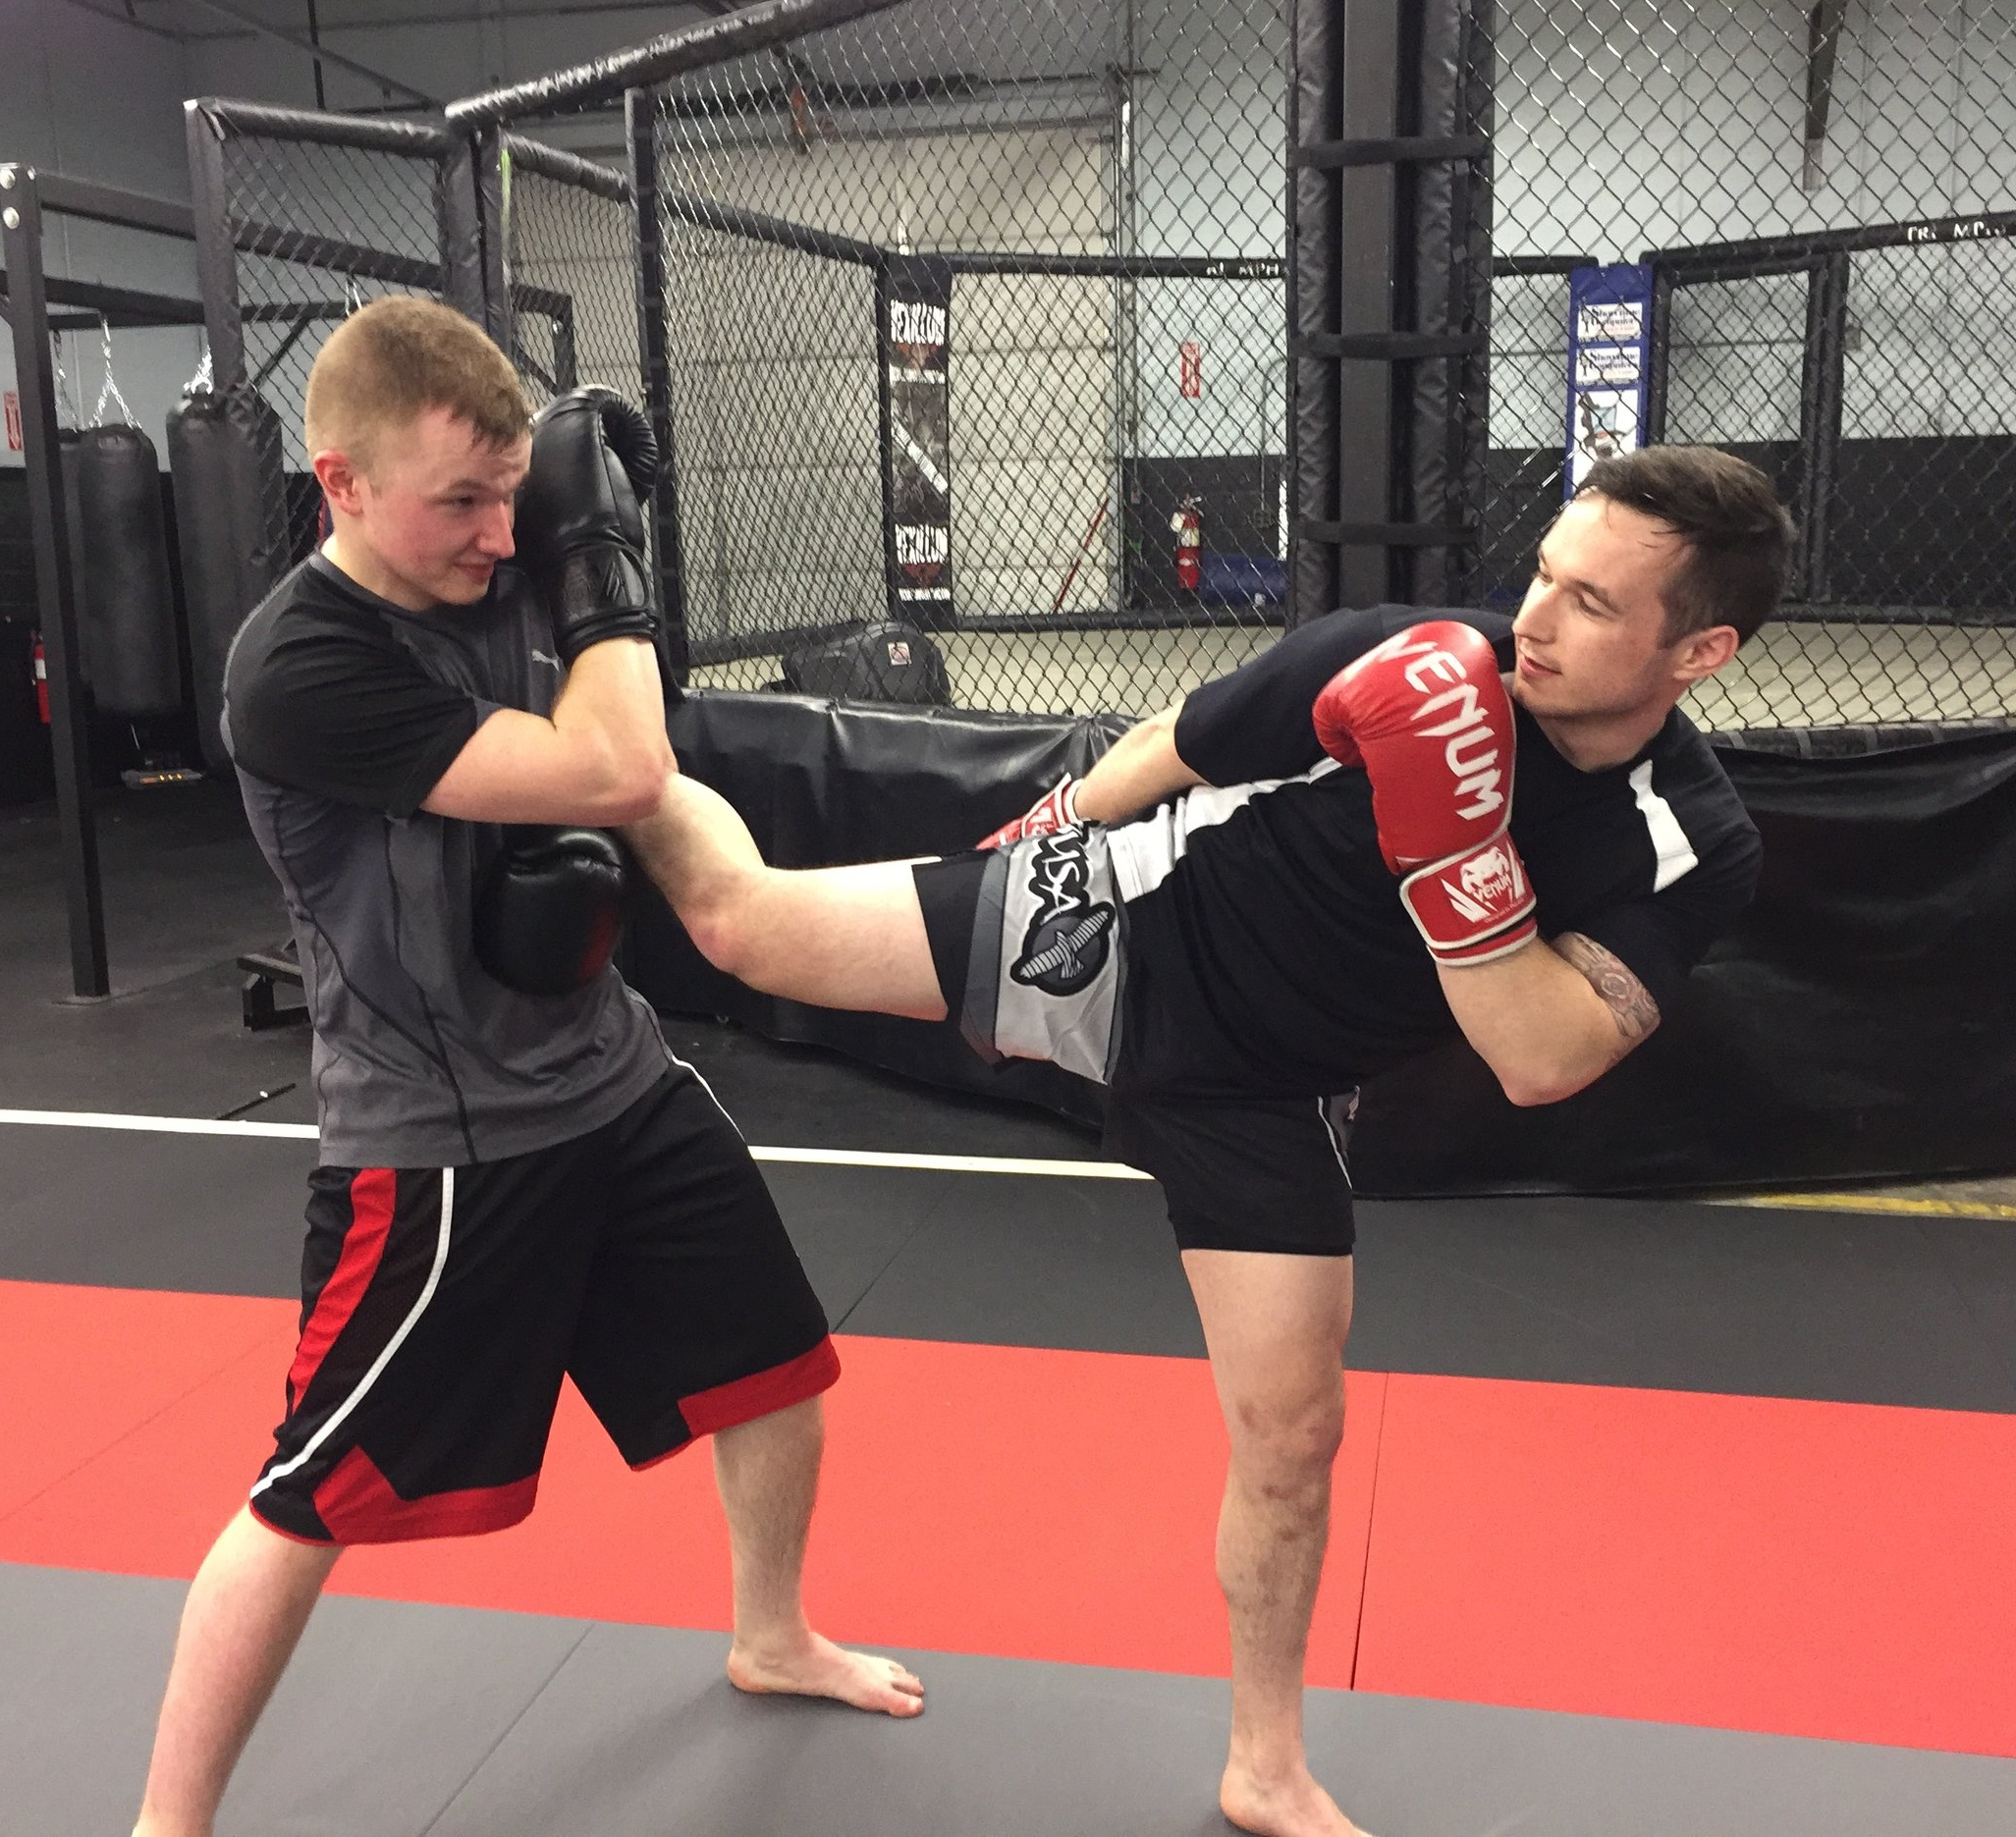 Students drill in Muay Thai class.